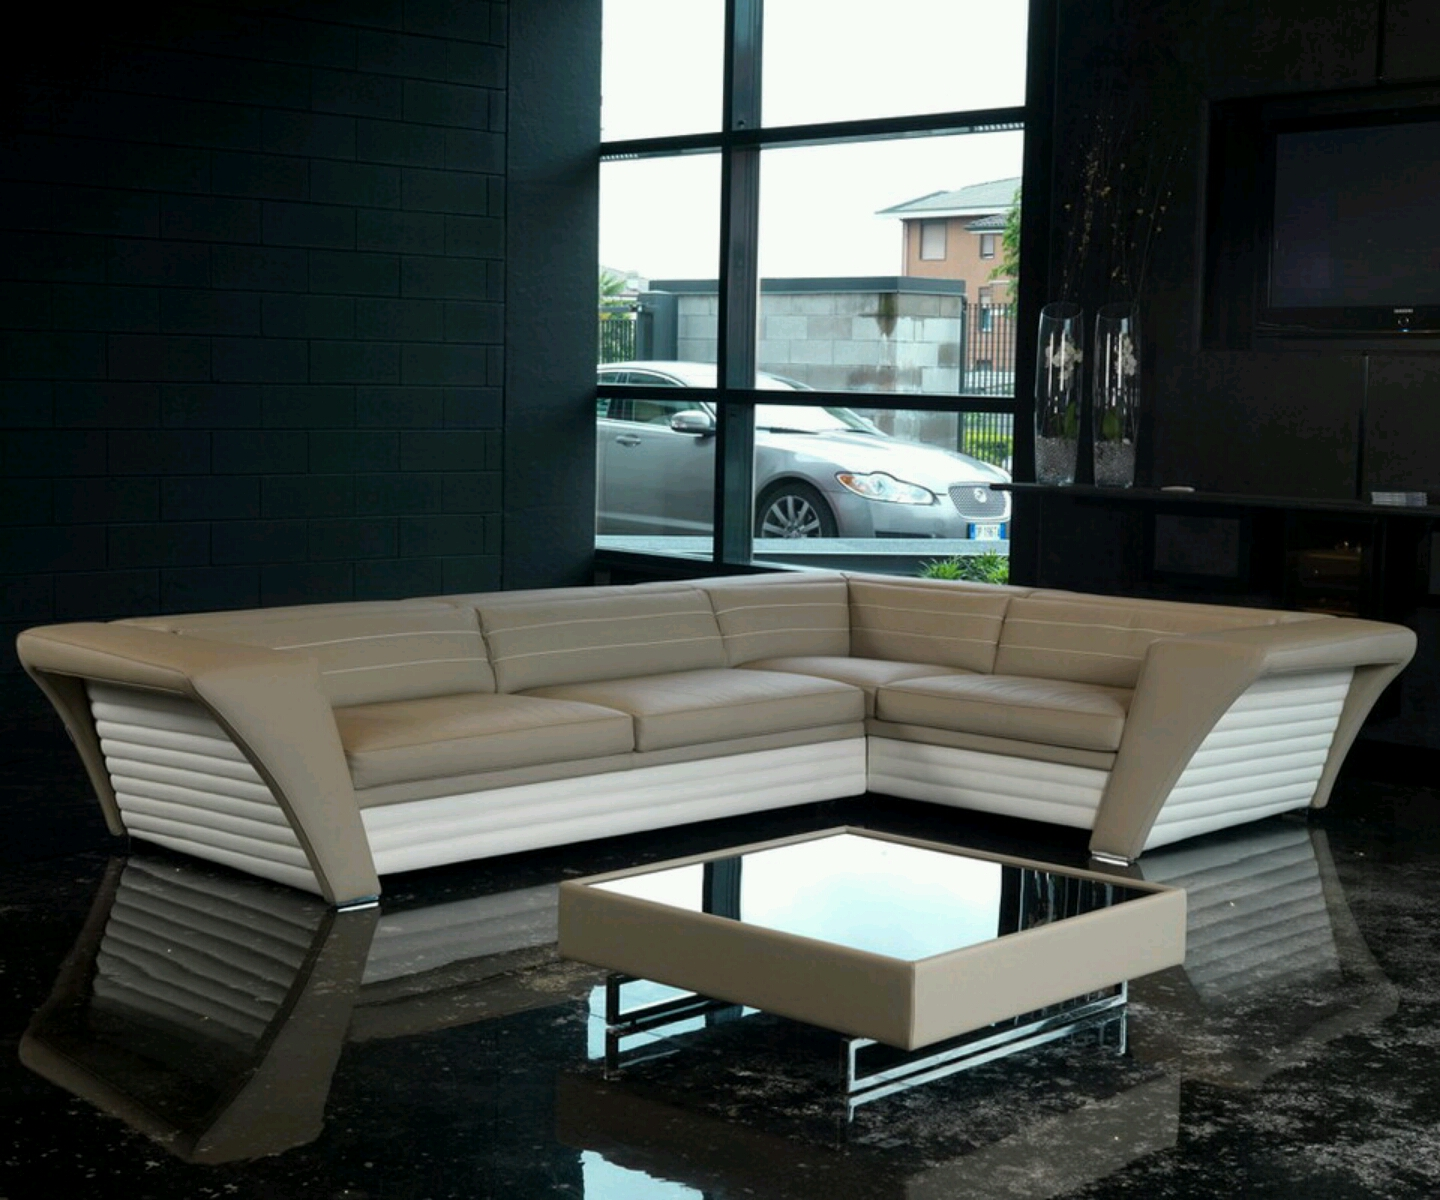 Modern sofa new designs an interior design for Sofa interior design